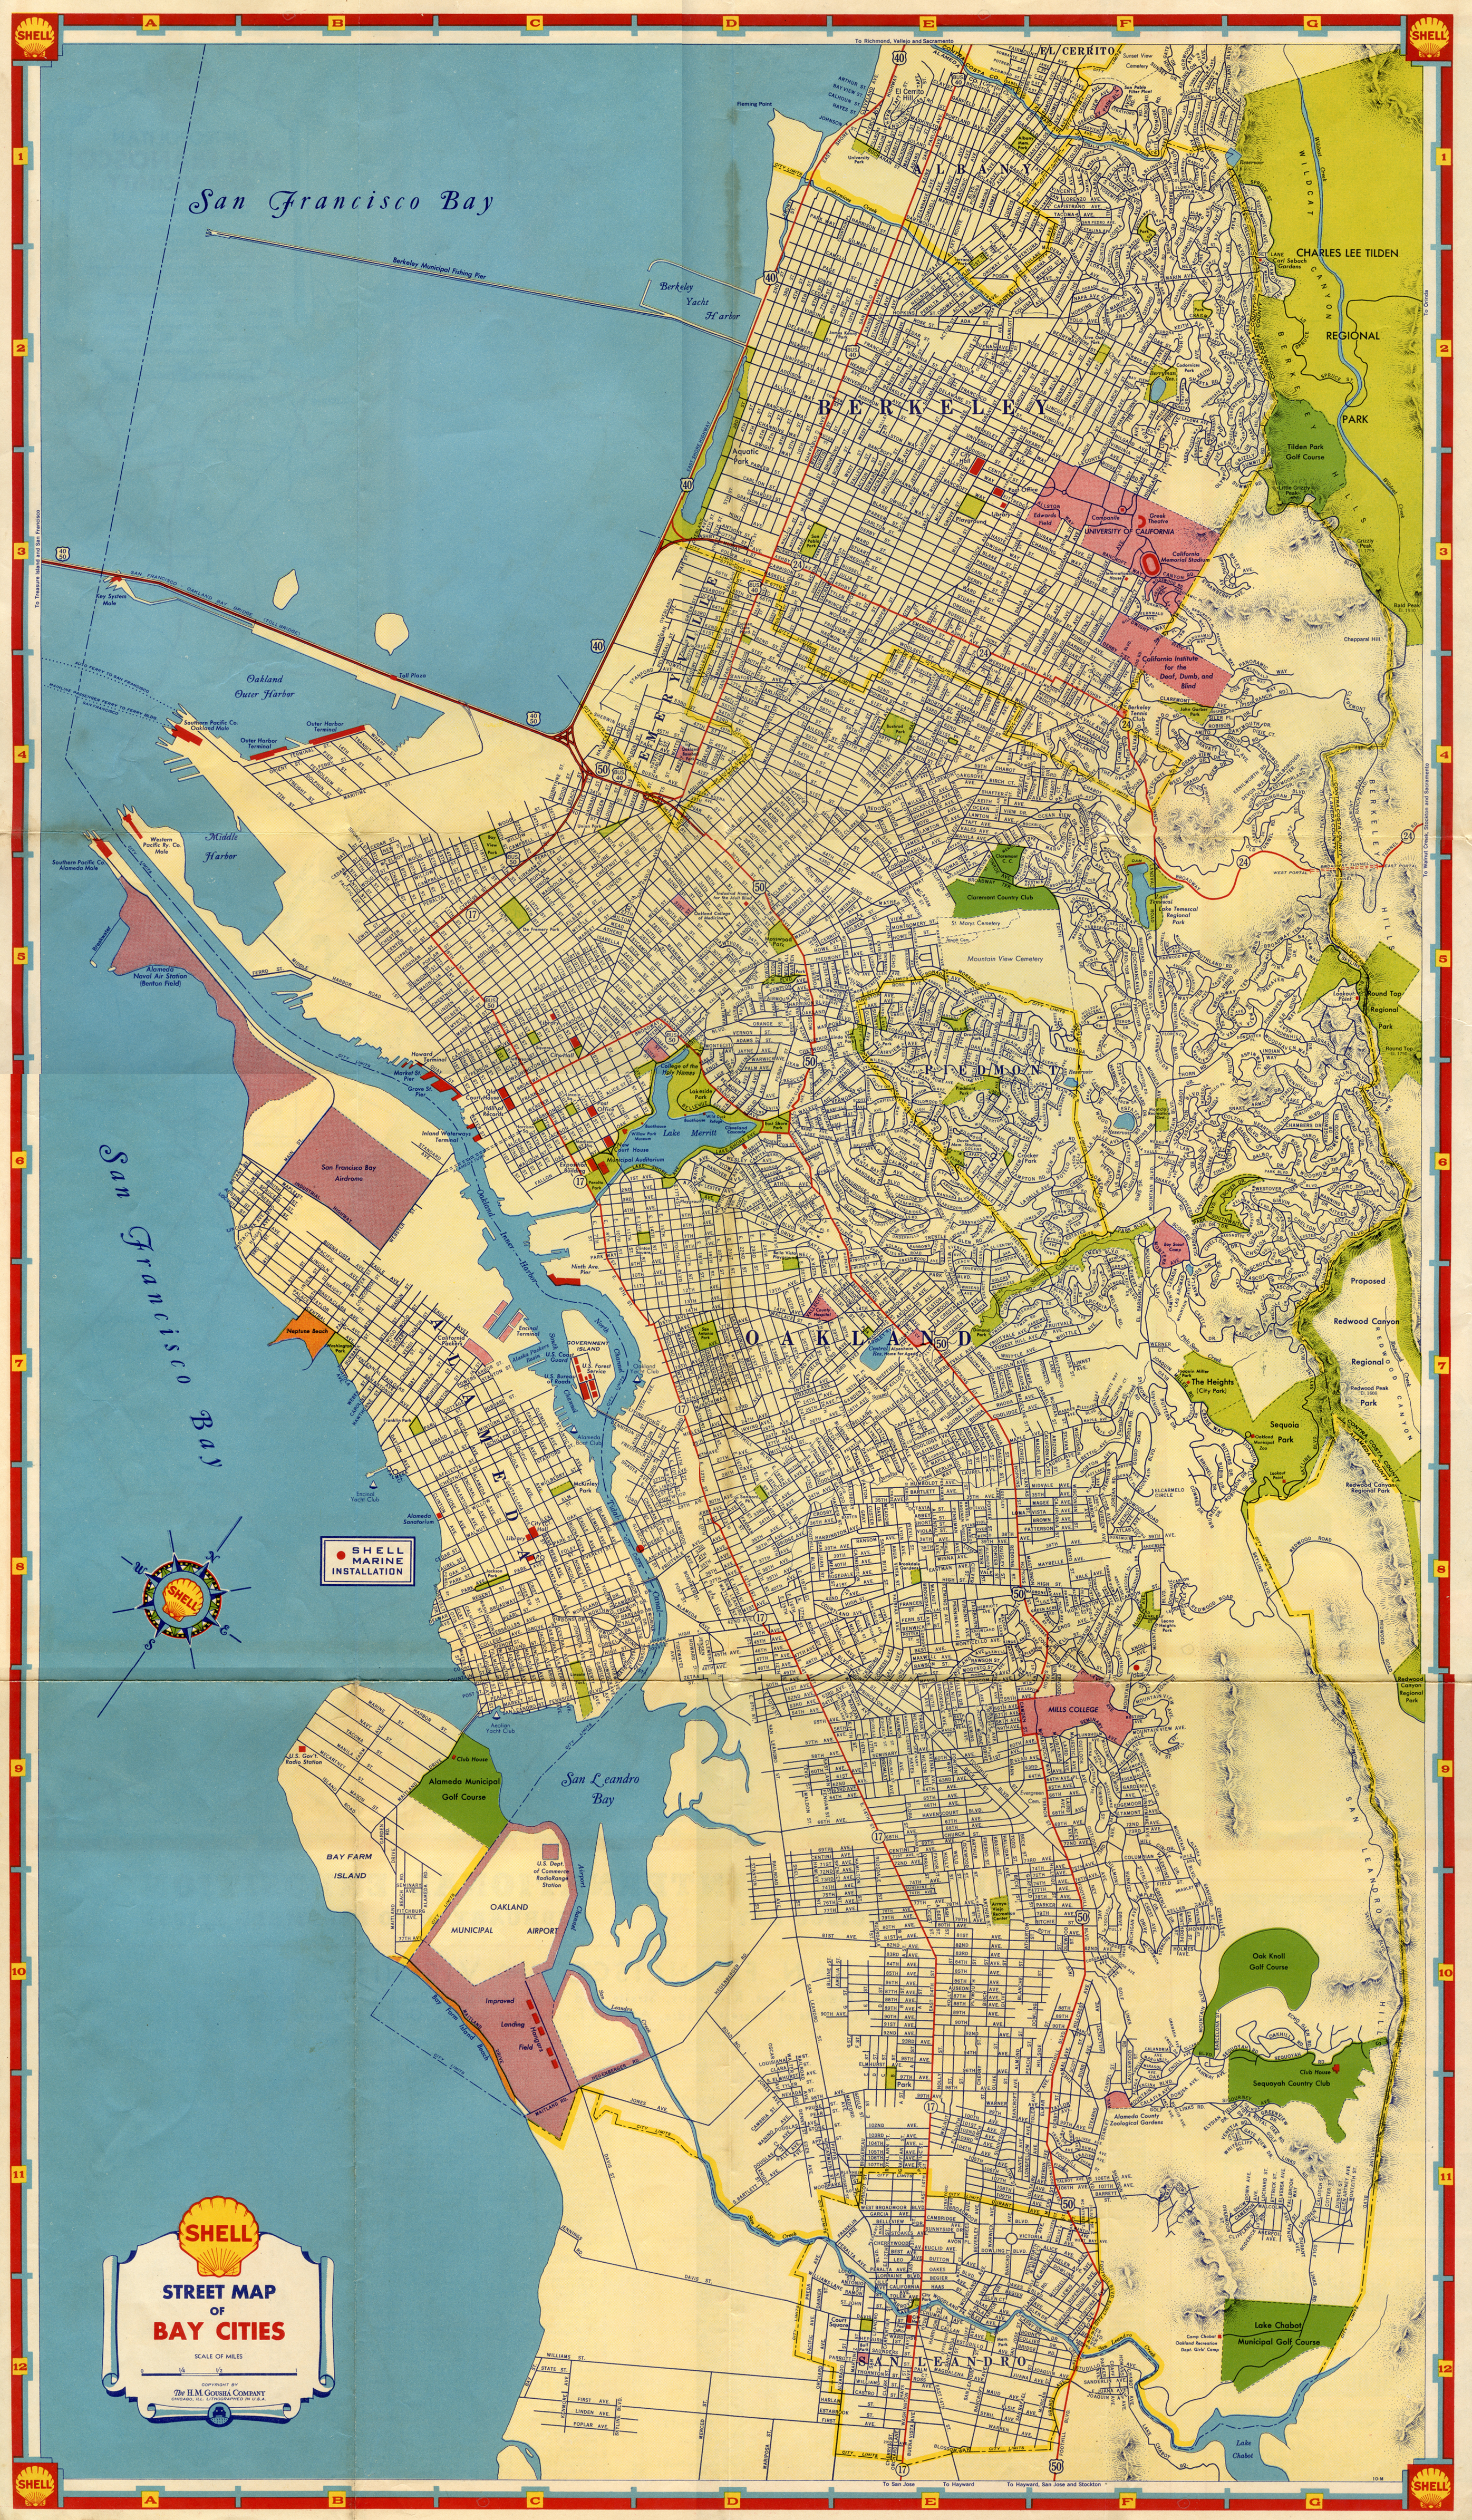 Alameda, California, 1939 old map – Alamedainfo on cities in alameda county california, map of alameda island ca, map of unincorporated alameda county, map of phoenix arizona, map of port orchard washington, map of mcminnville oregon, bad neighborhoods in oakland california, map of sheffield uk, map of auburn washington, map of ormond beach florida, map of venice florida, map of westerville ohio, alameda island california, map of beaverton oregon, map of gresham oregon, map of orlando florida, map of bend oregon, map of king of prussia pennsylvania, map of moab utah, map of tucson arizona,